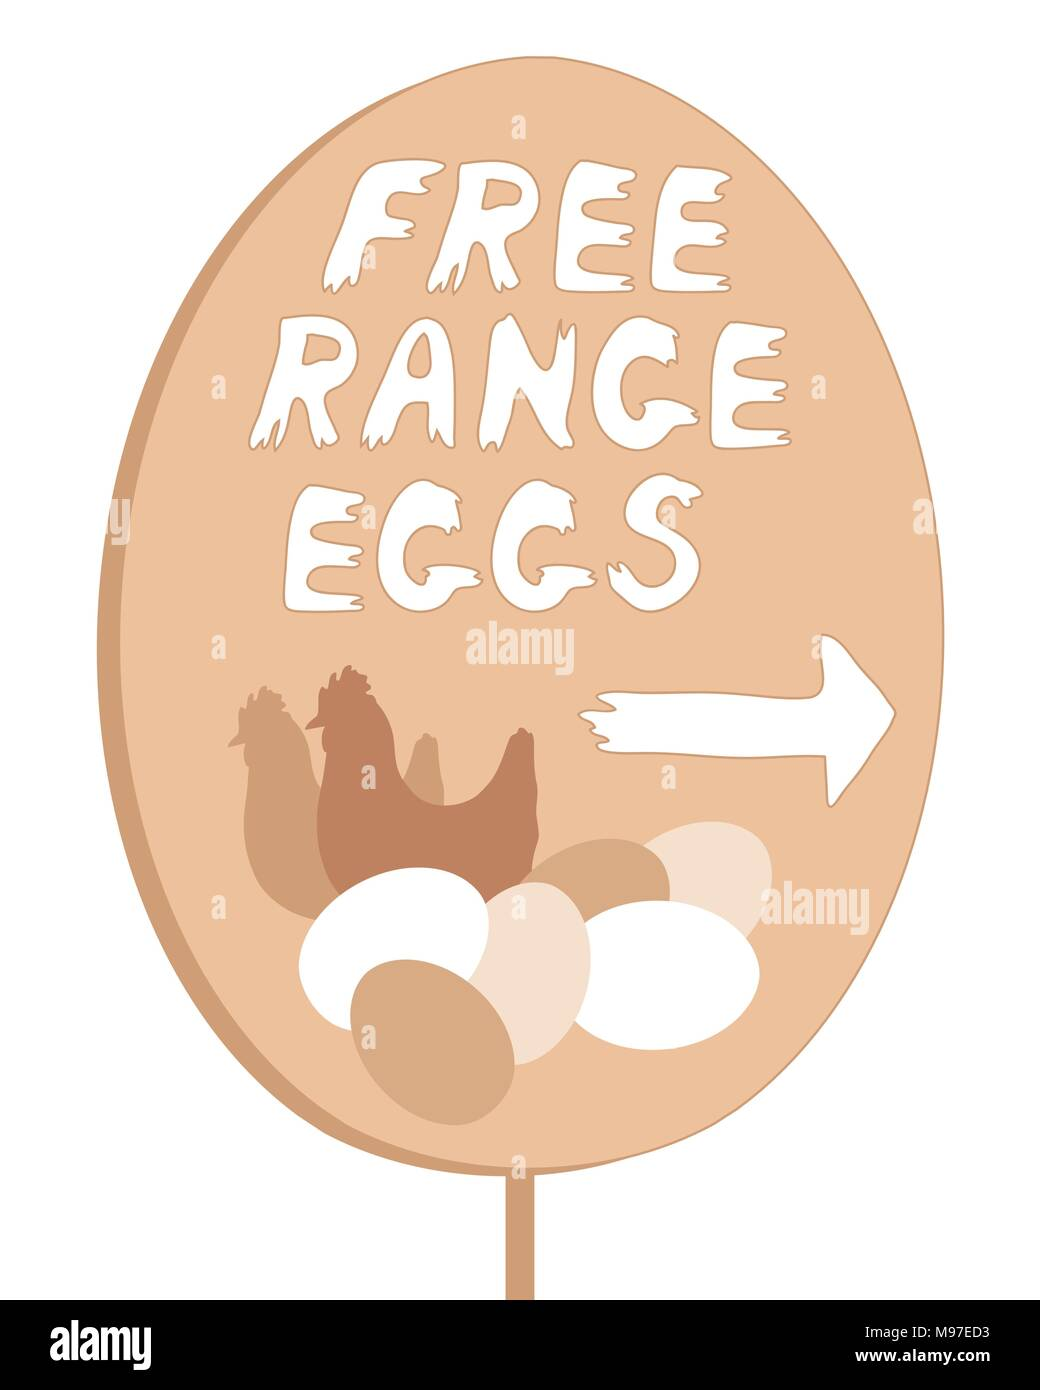 an illustration of a home made free range egg sign with lettering and illustration isolated on a white background - Stock Vector